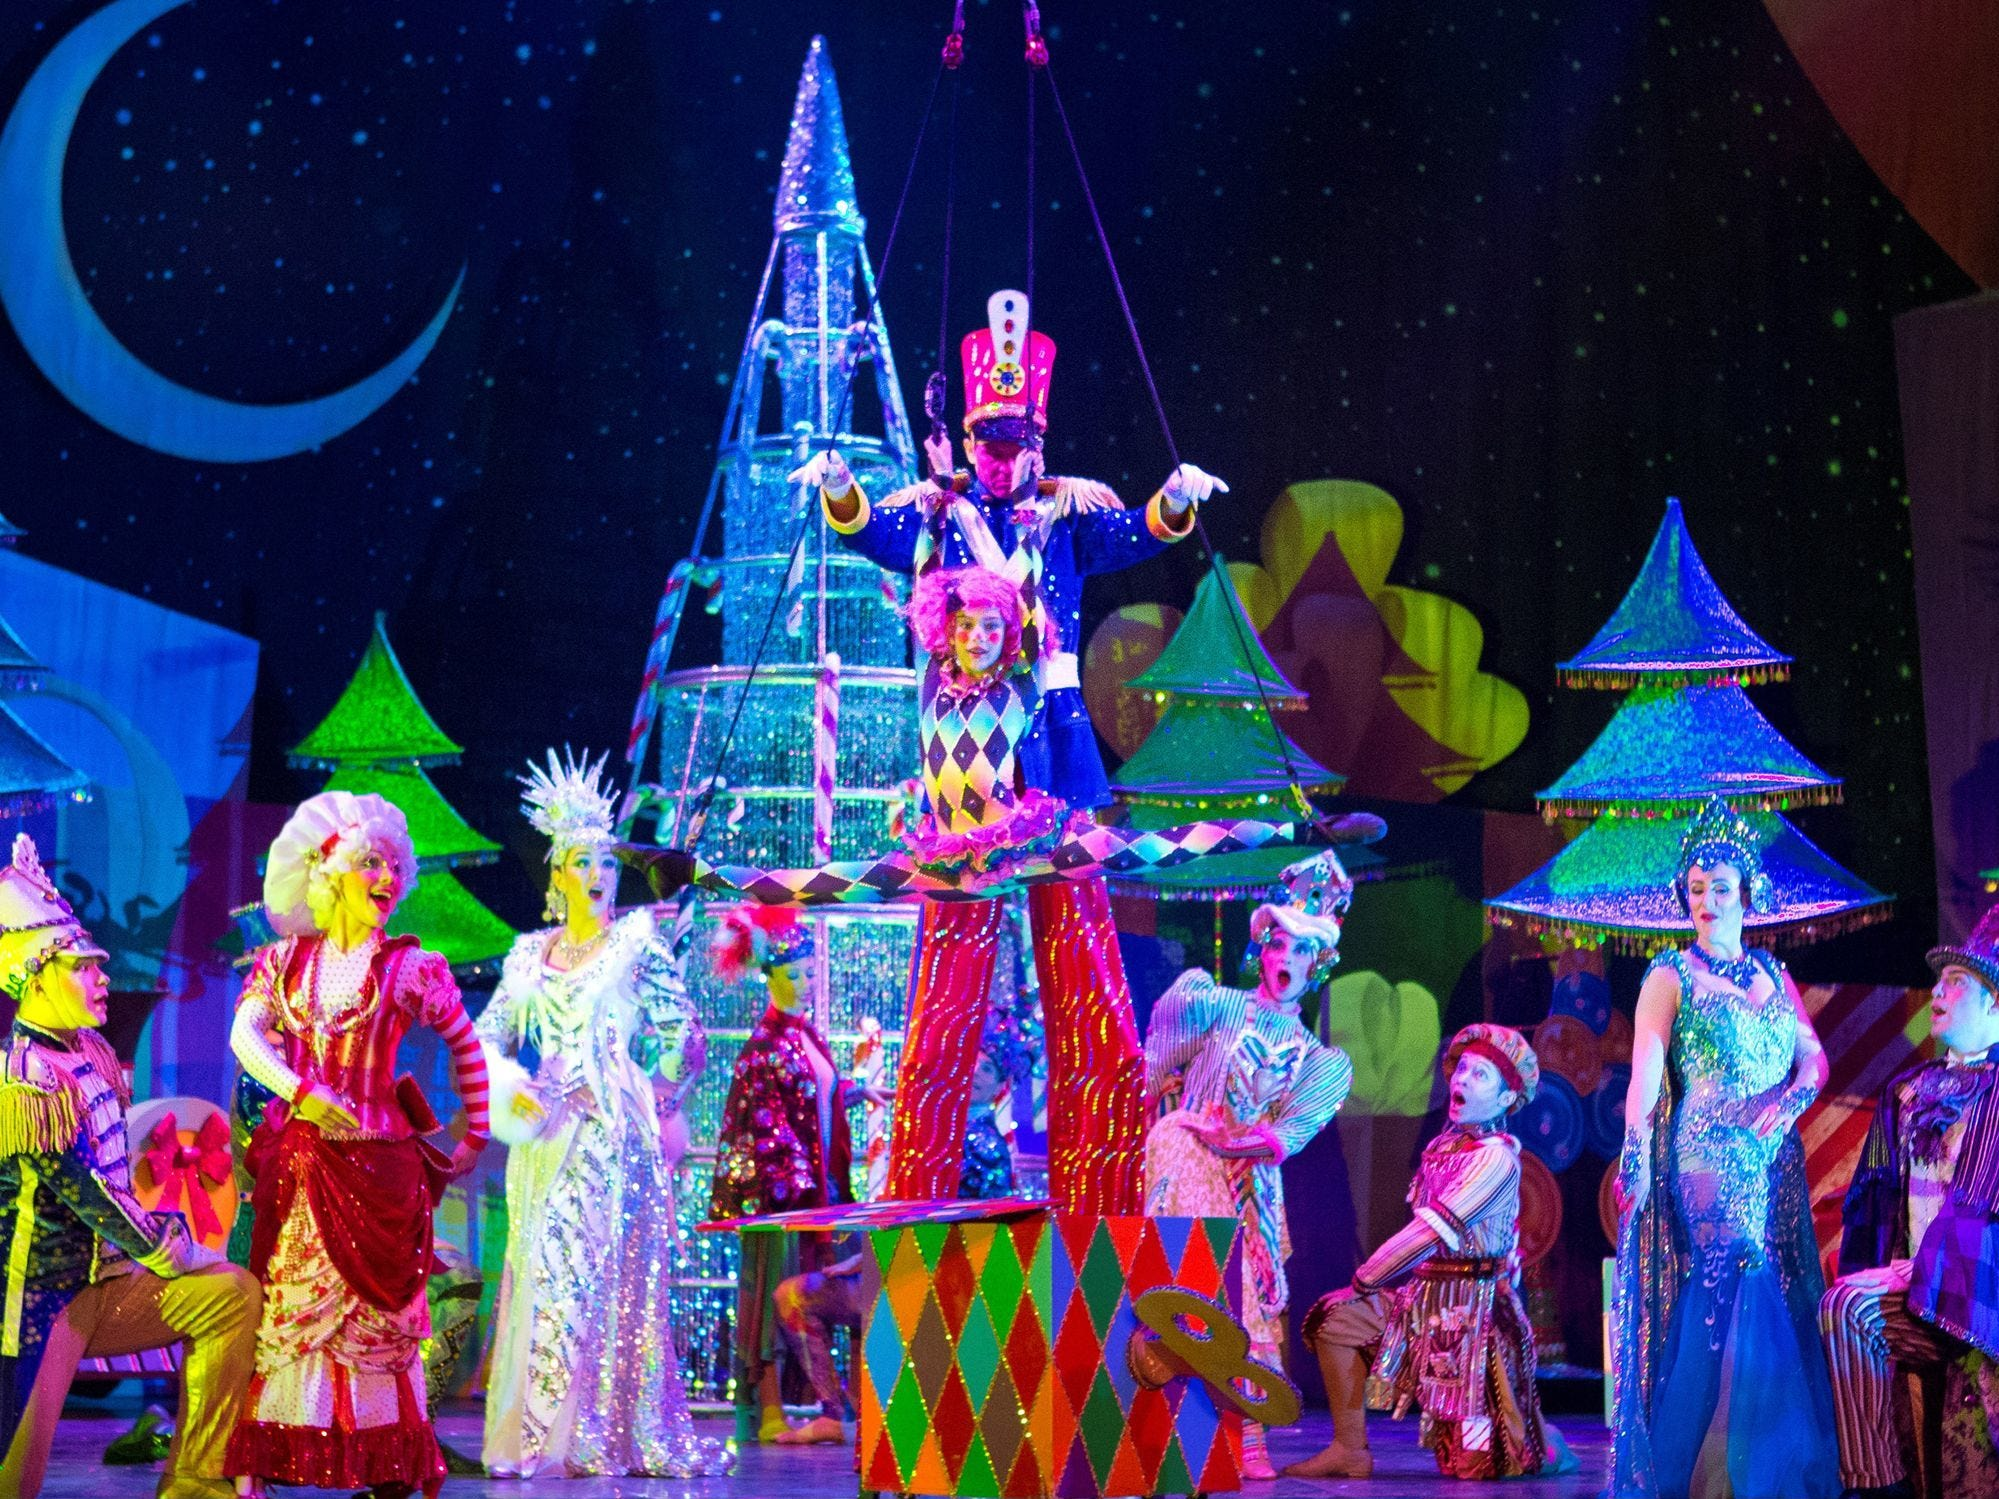 Dec. 1